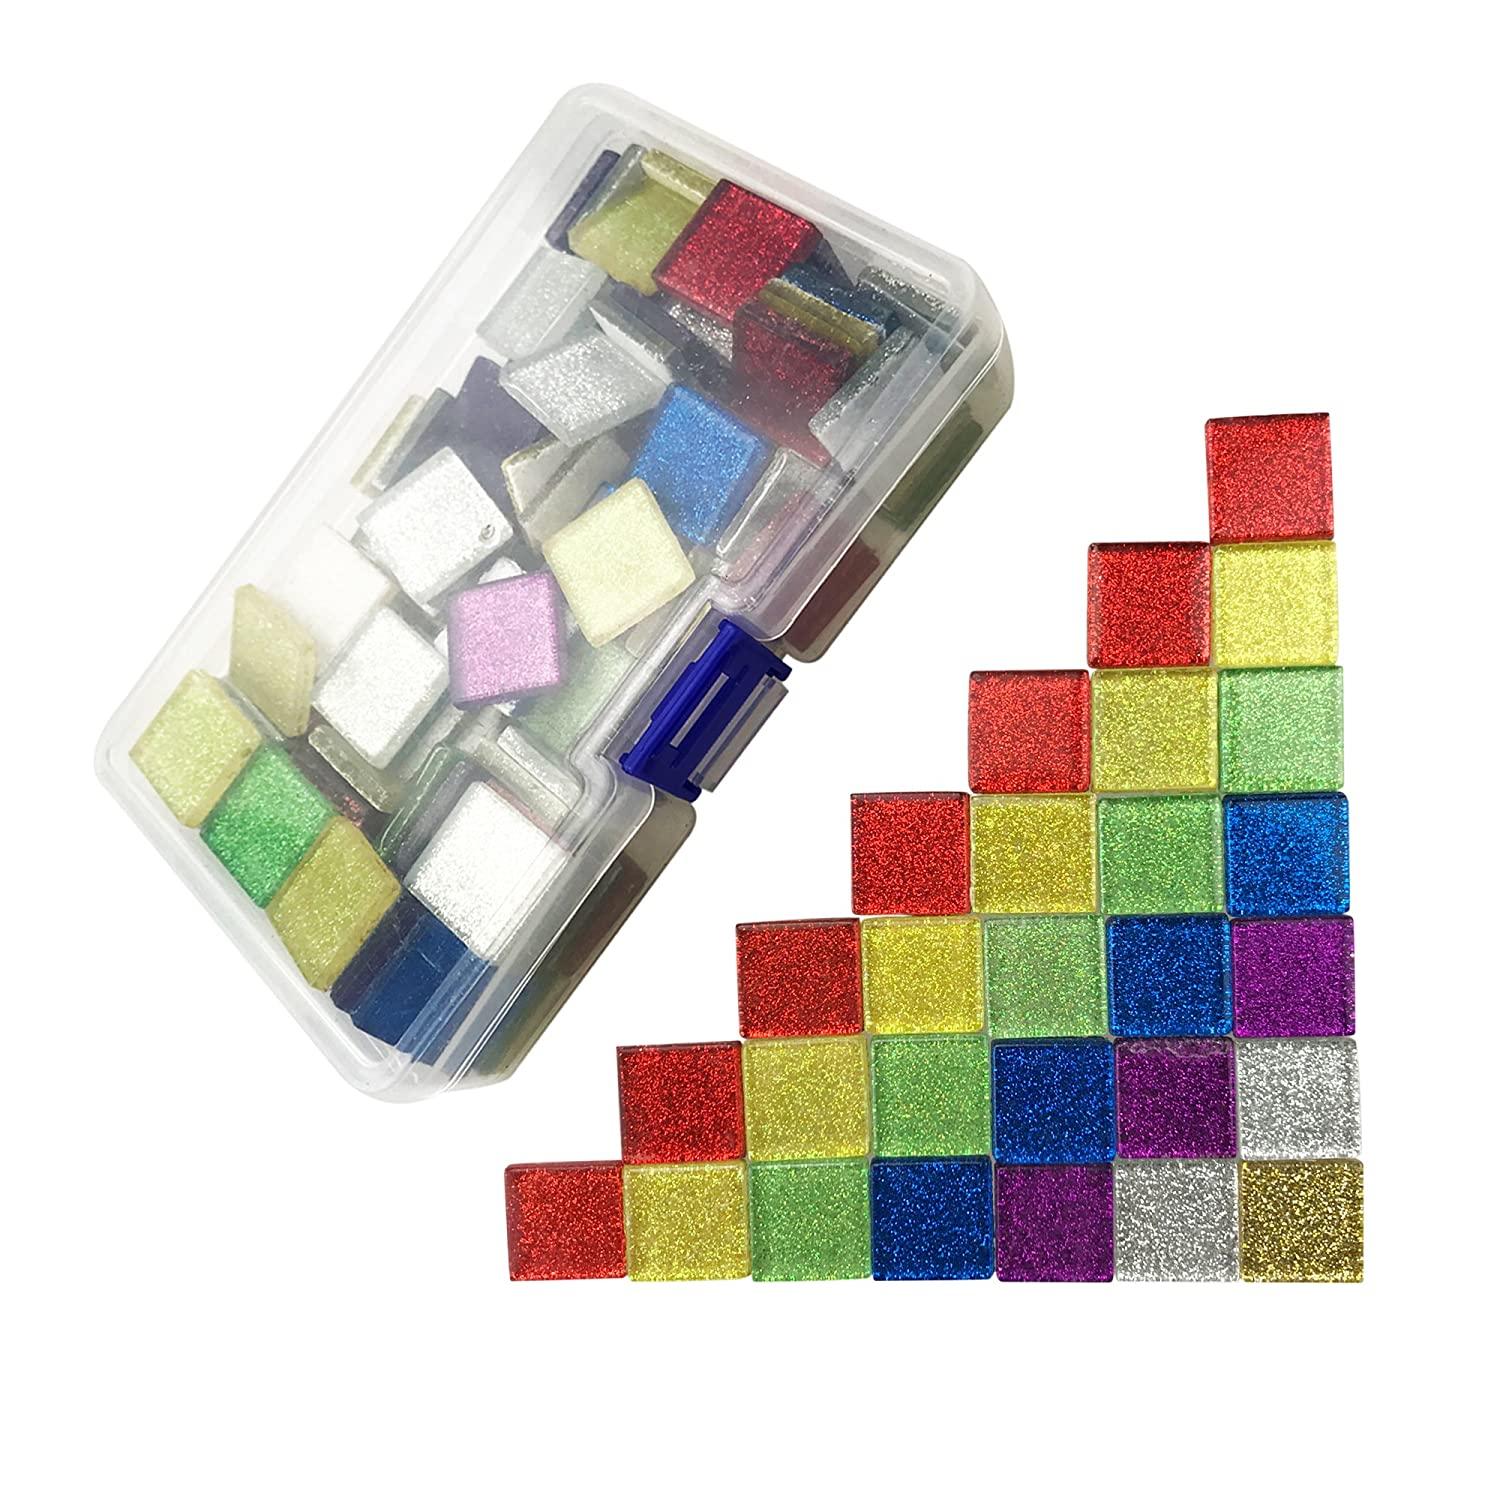 600 Gram Mosaic Tiles Bulk Glass Glitter Mosaic Pieces For Diy Arts Crafts Home Decoration Mixed Color 2cm 2cm By Cspring